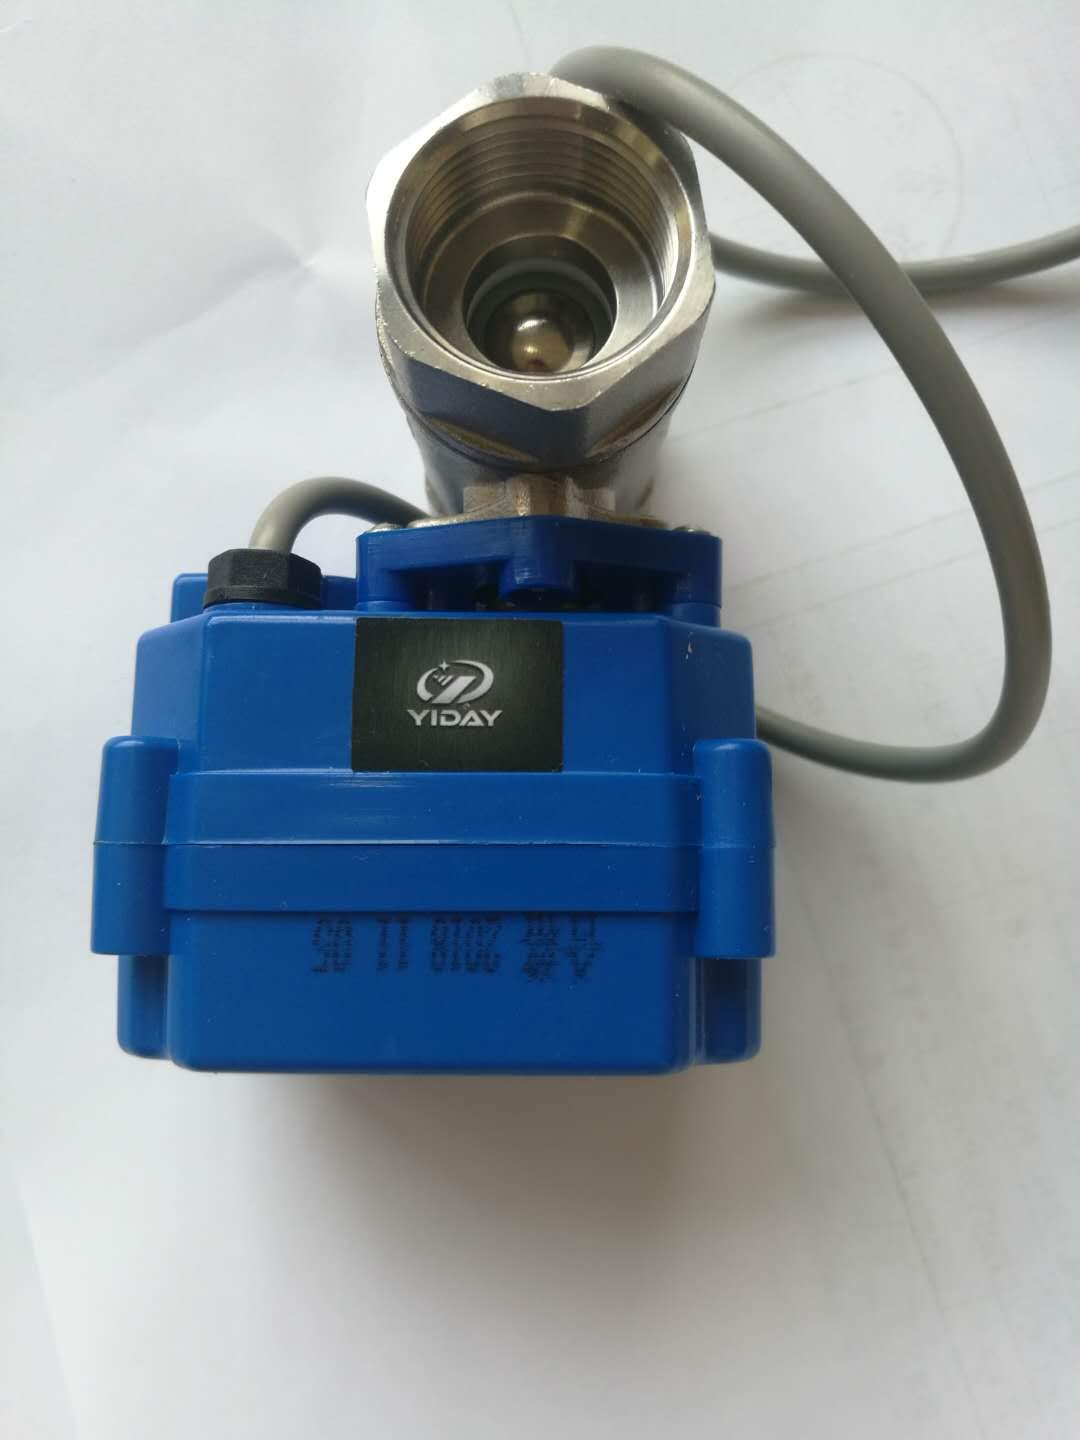 3//4 SS304 Ball Valve with Full Port Mini Motorized Ball Valve AC//DC 9-24V and CR02 3 Wire